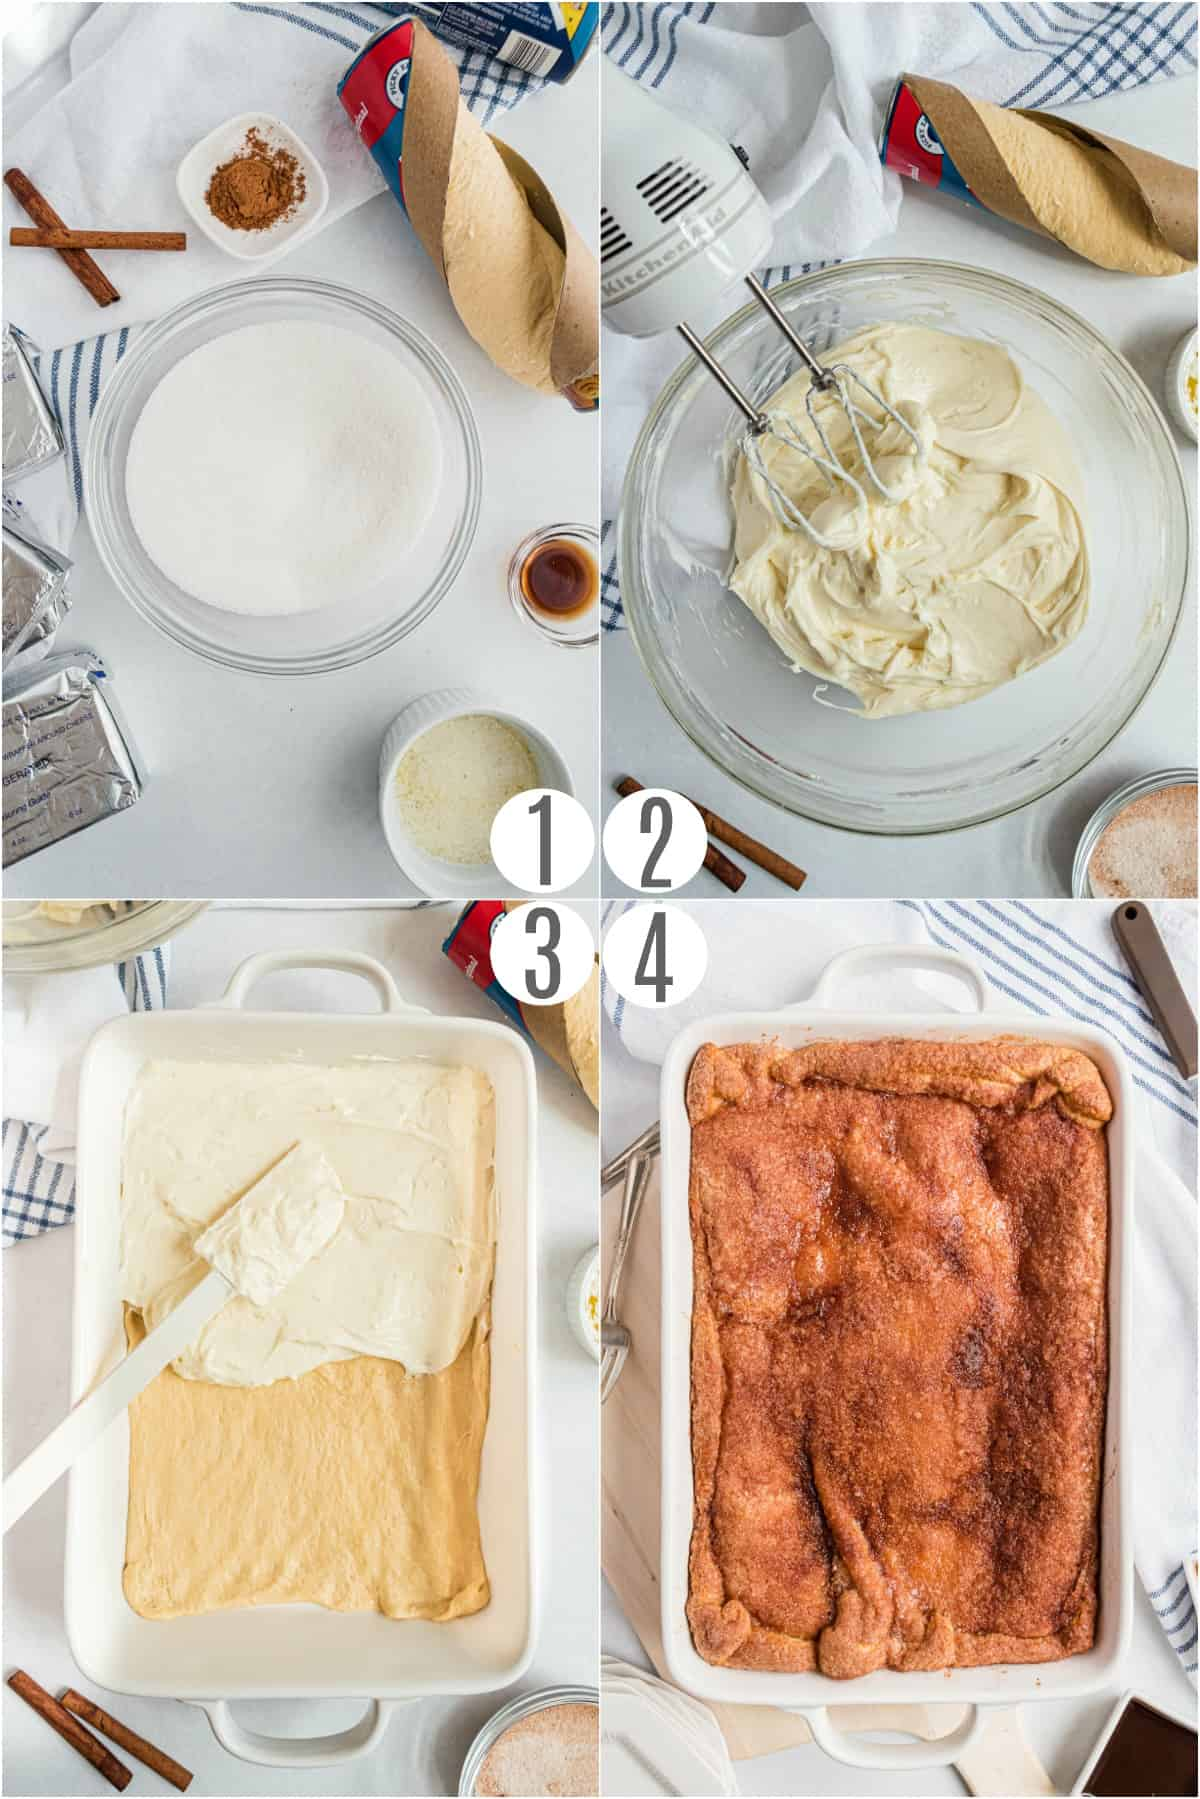 Step by step photos showing how to make sopapilla cheesecake bars.